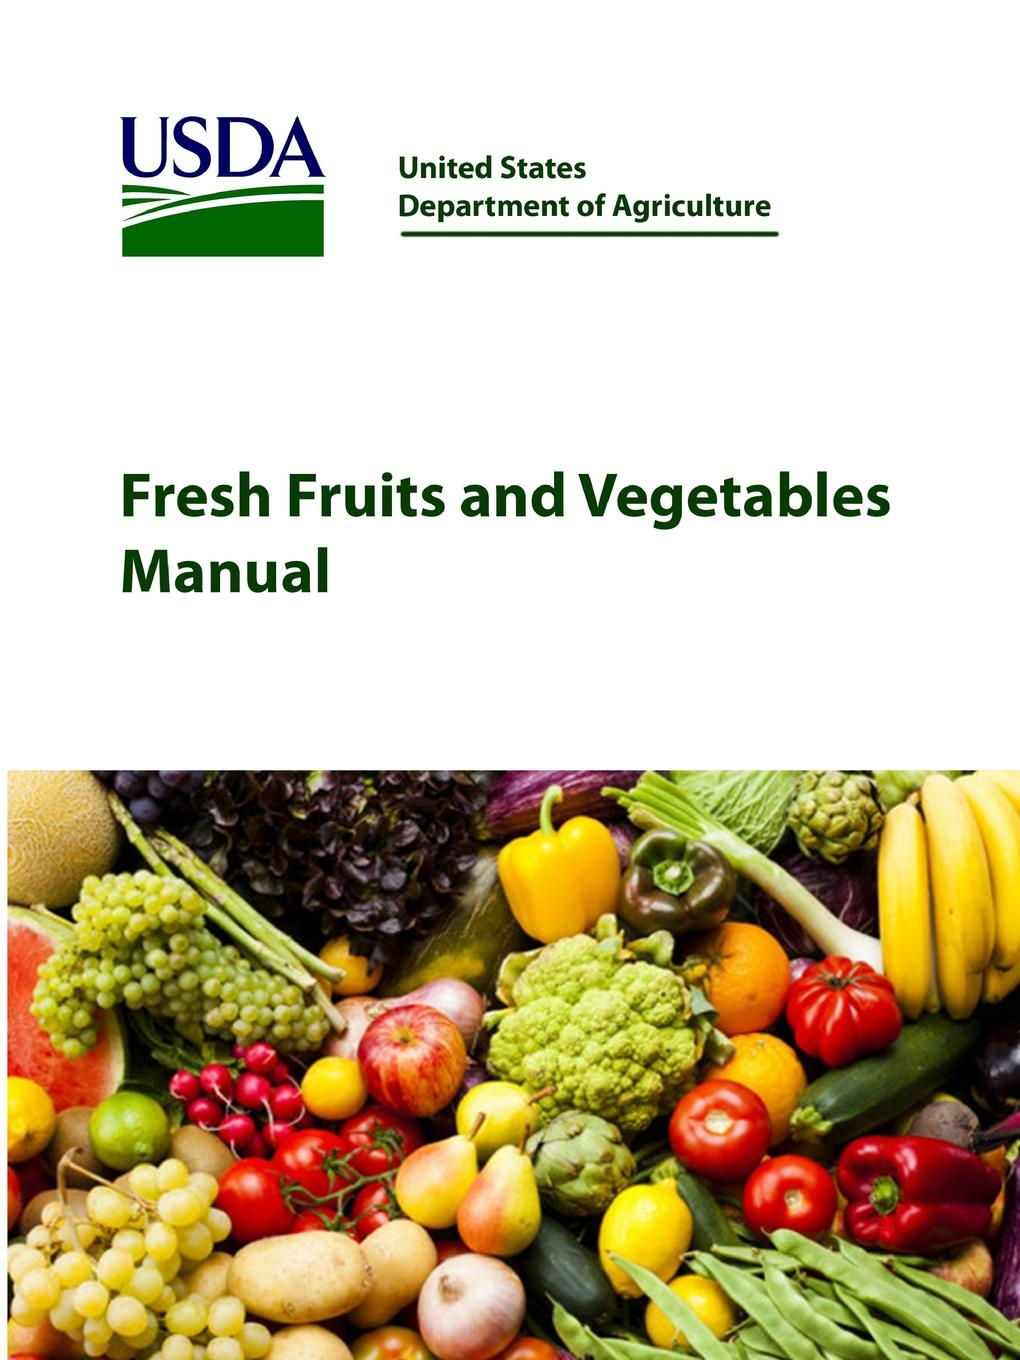 United States Department of Agriculture Fresh Fruits and Vegetables Manual [zob] the united states cmc 3318 186 servo 8923 barab00 w1 import switch